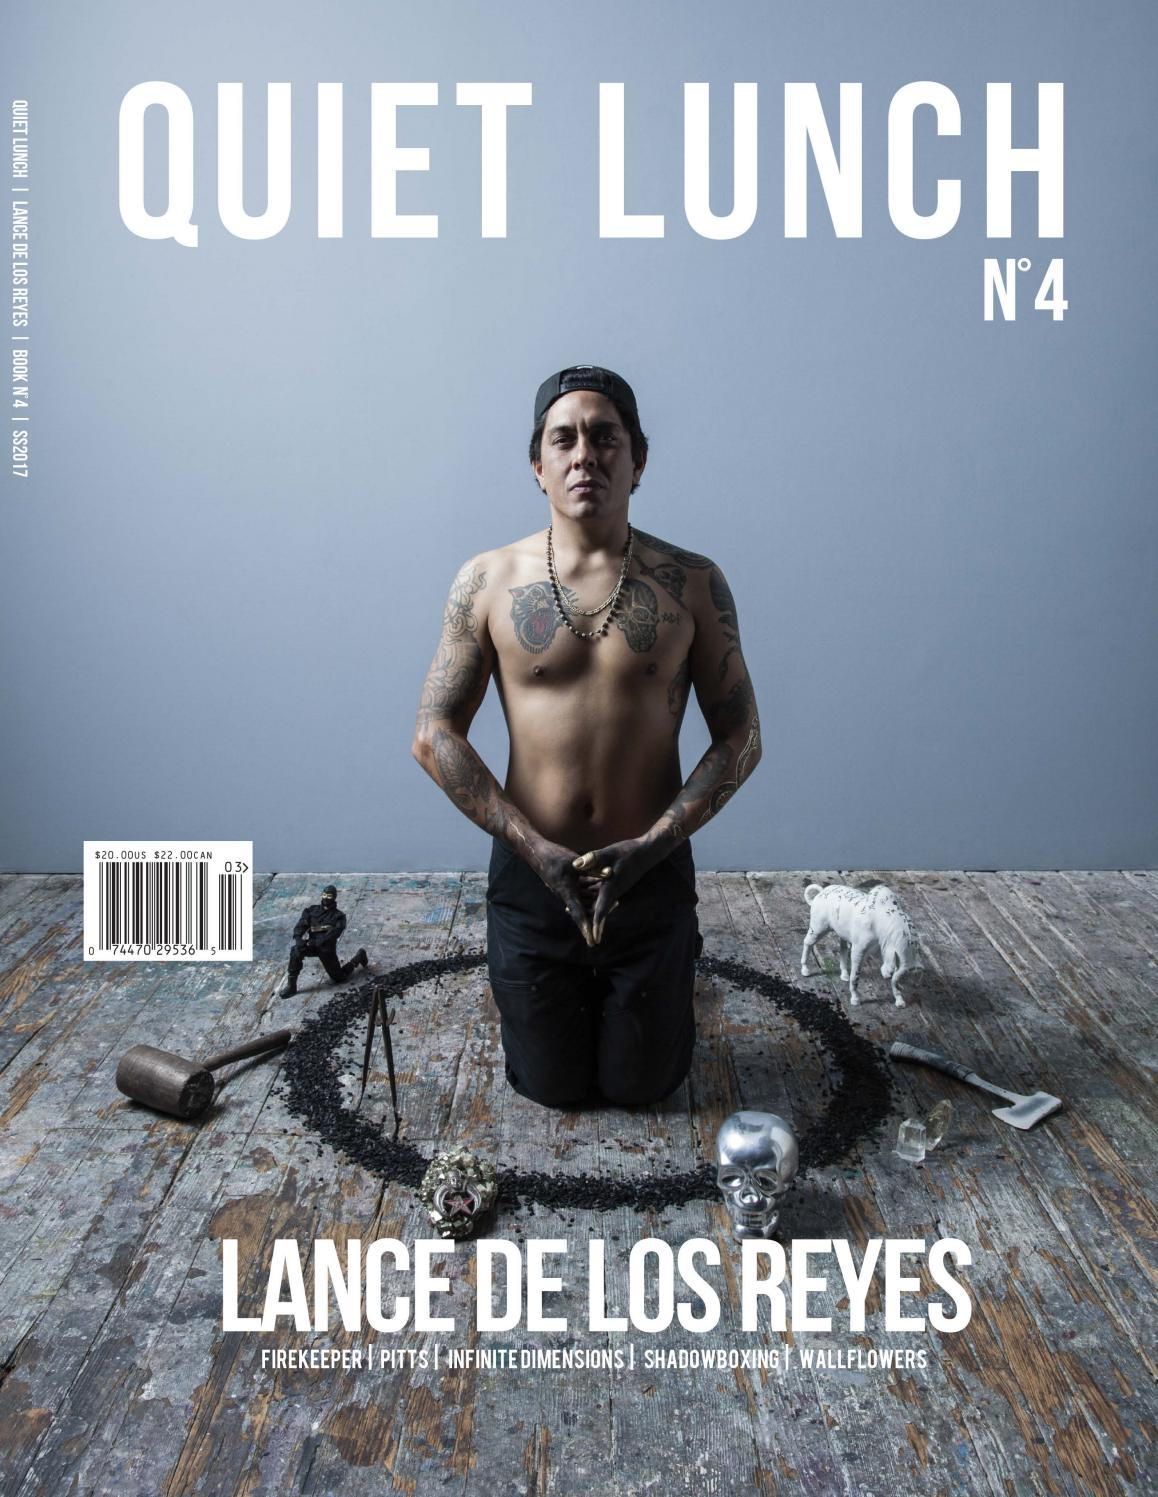 Quiet Lunch Lance De Los Reyes Book No 4 By Quiet Lunch Issuu